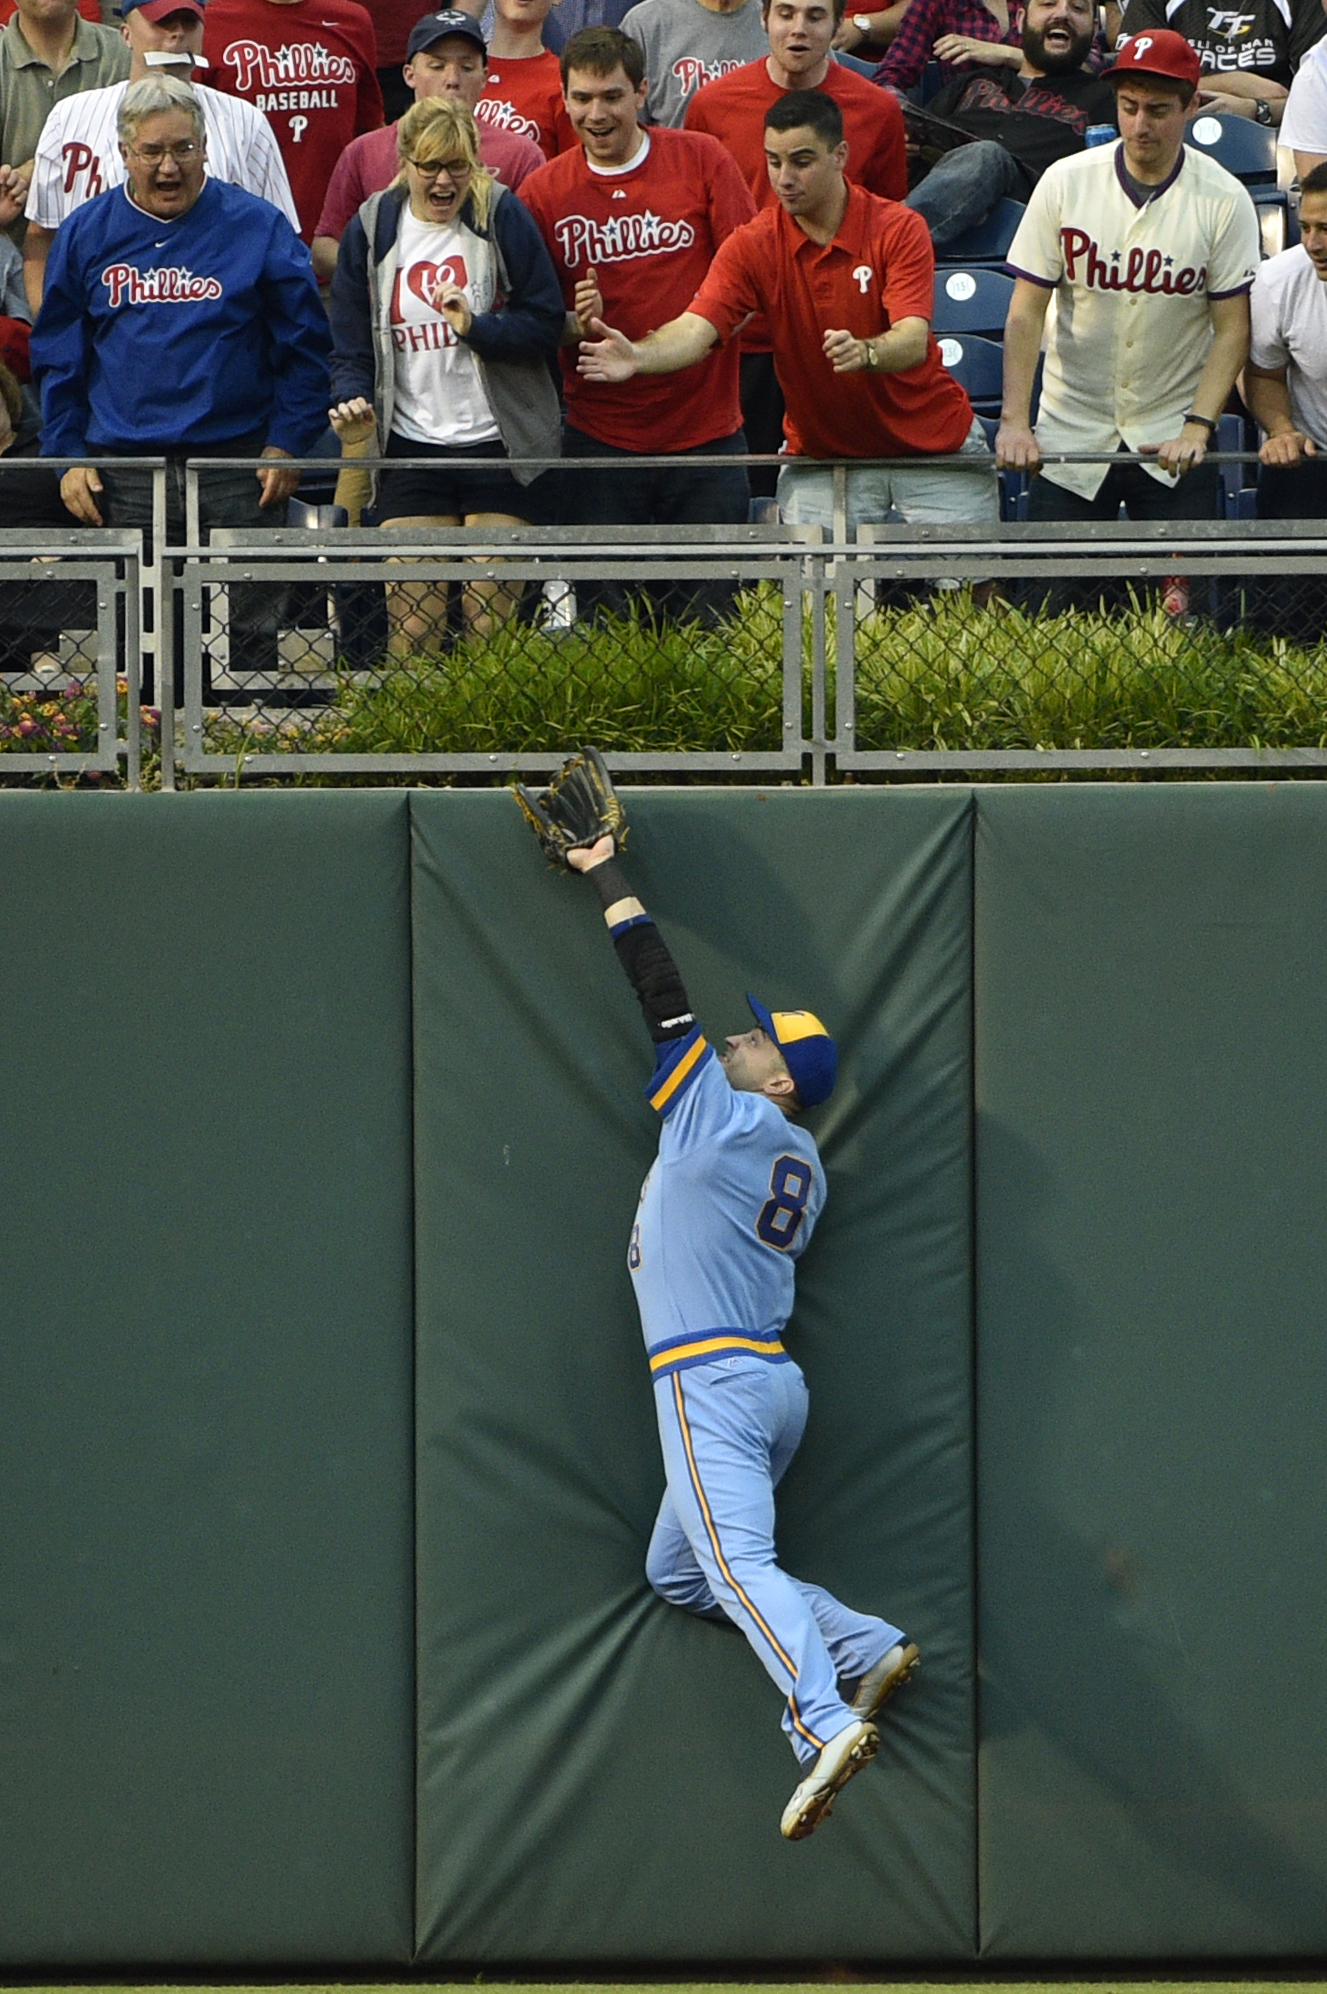 Milwaukee Brewers left fielder Ryan Braun makes a leaping catch against the wall on a fly ball hit by Philadelphia Phillies' Cody Asche during the second inning of a baseball game, Friday, June 3, 2016, in Philadelphia. (AP Photo/Derik Hamilton)